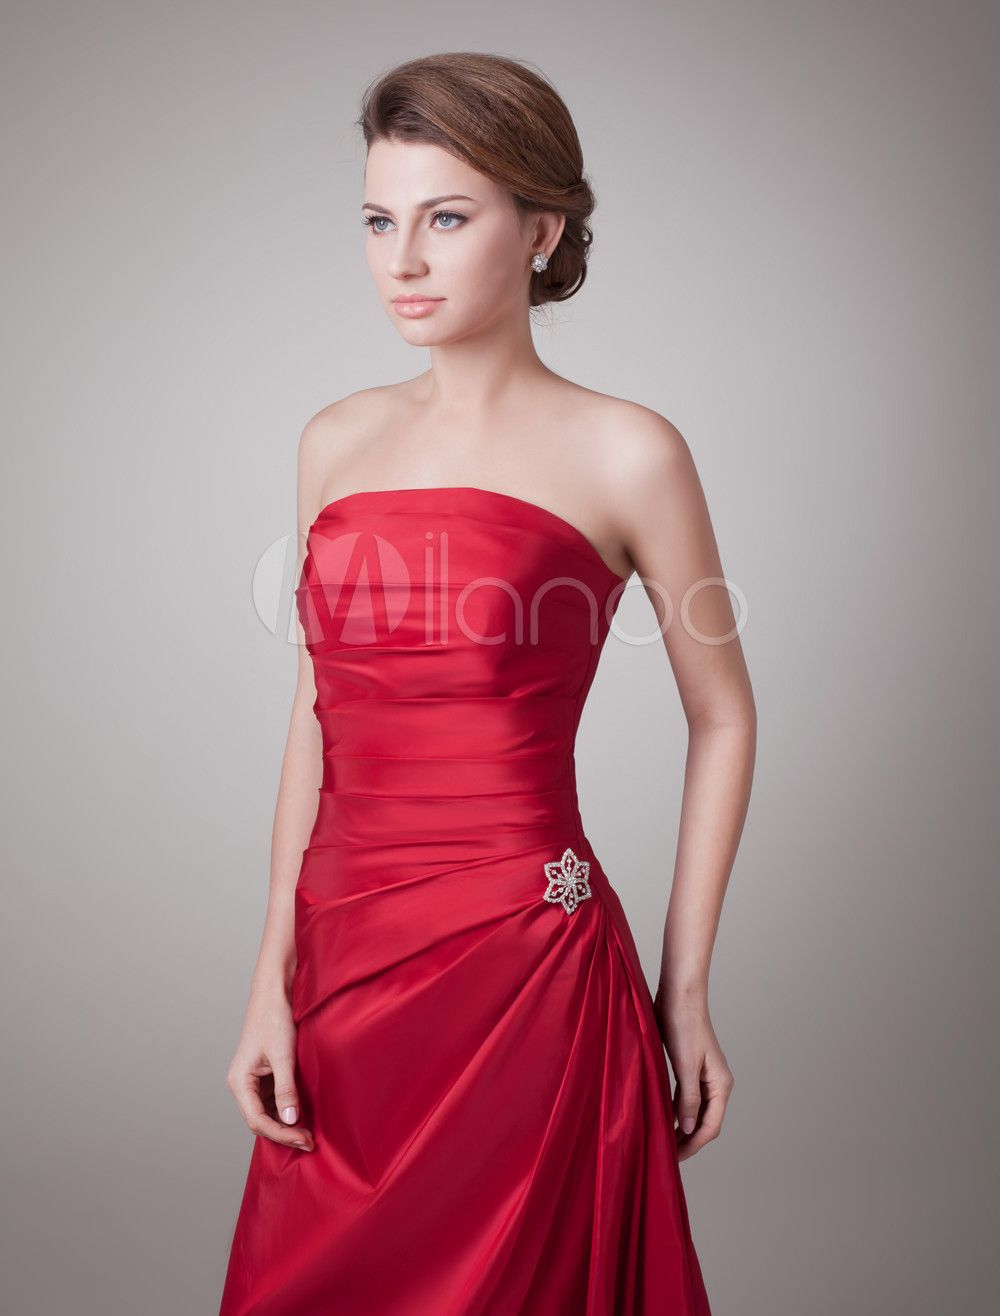 3523fd1ddb17 Strapless Ruched Dress With 3 4 Length Sleeves For Mother of Bride Wedding  Guest Dress